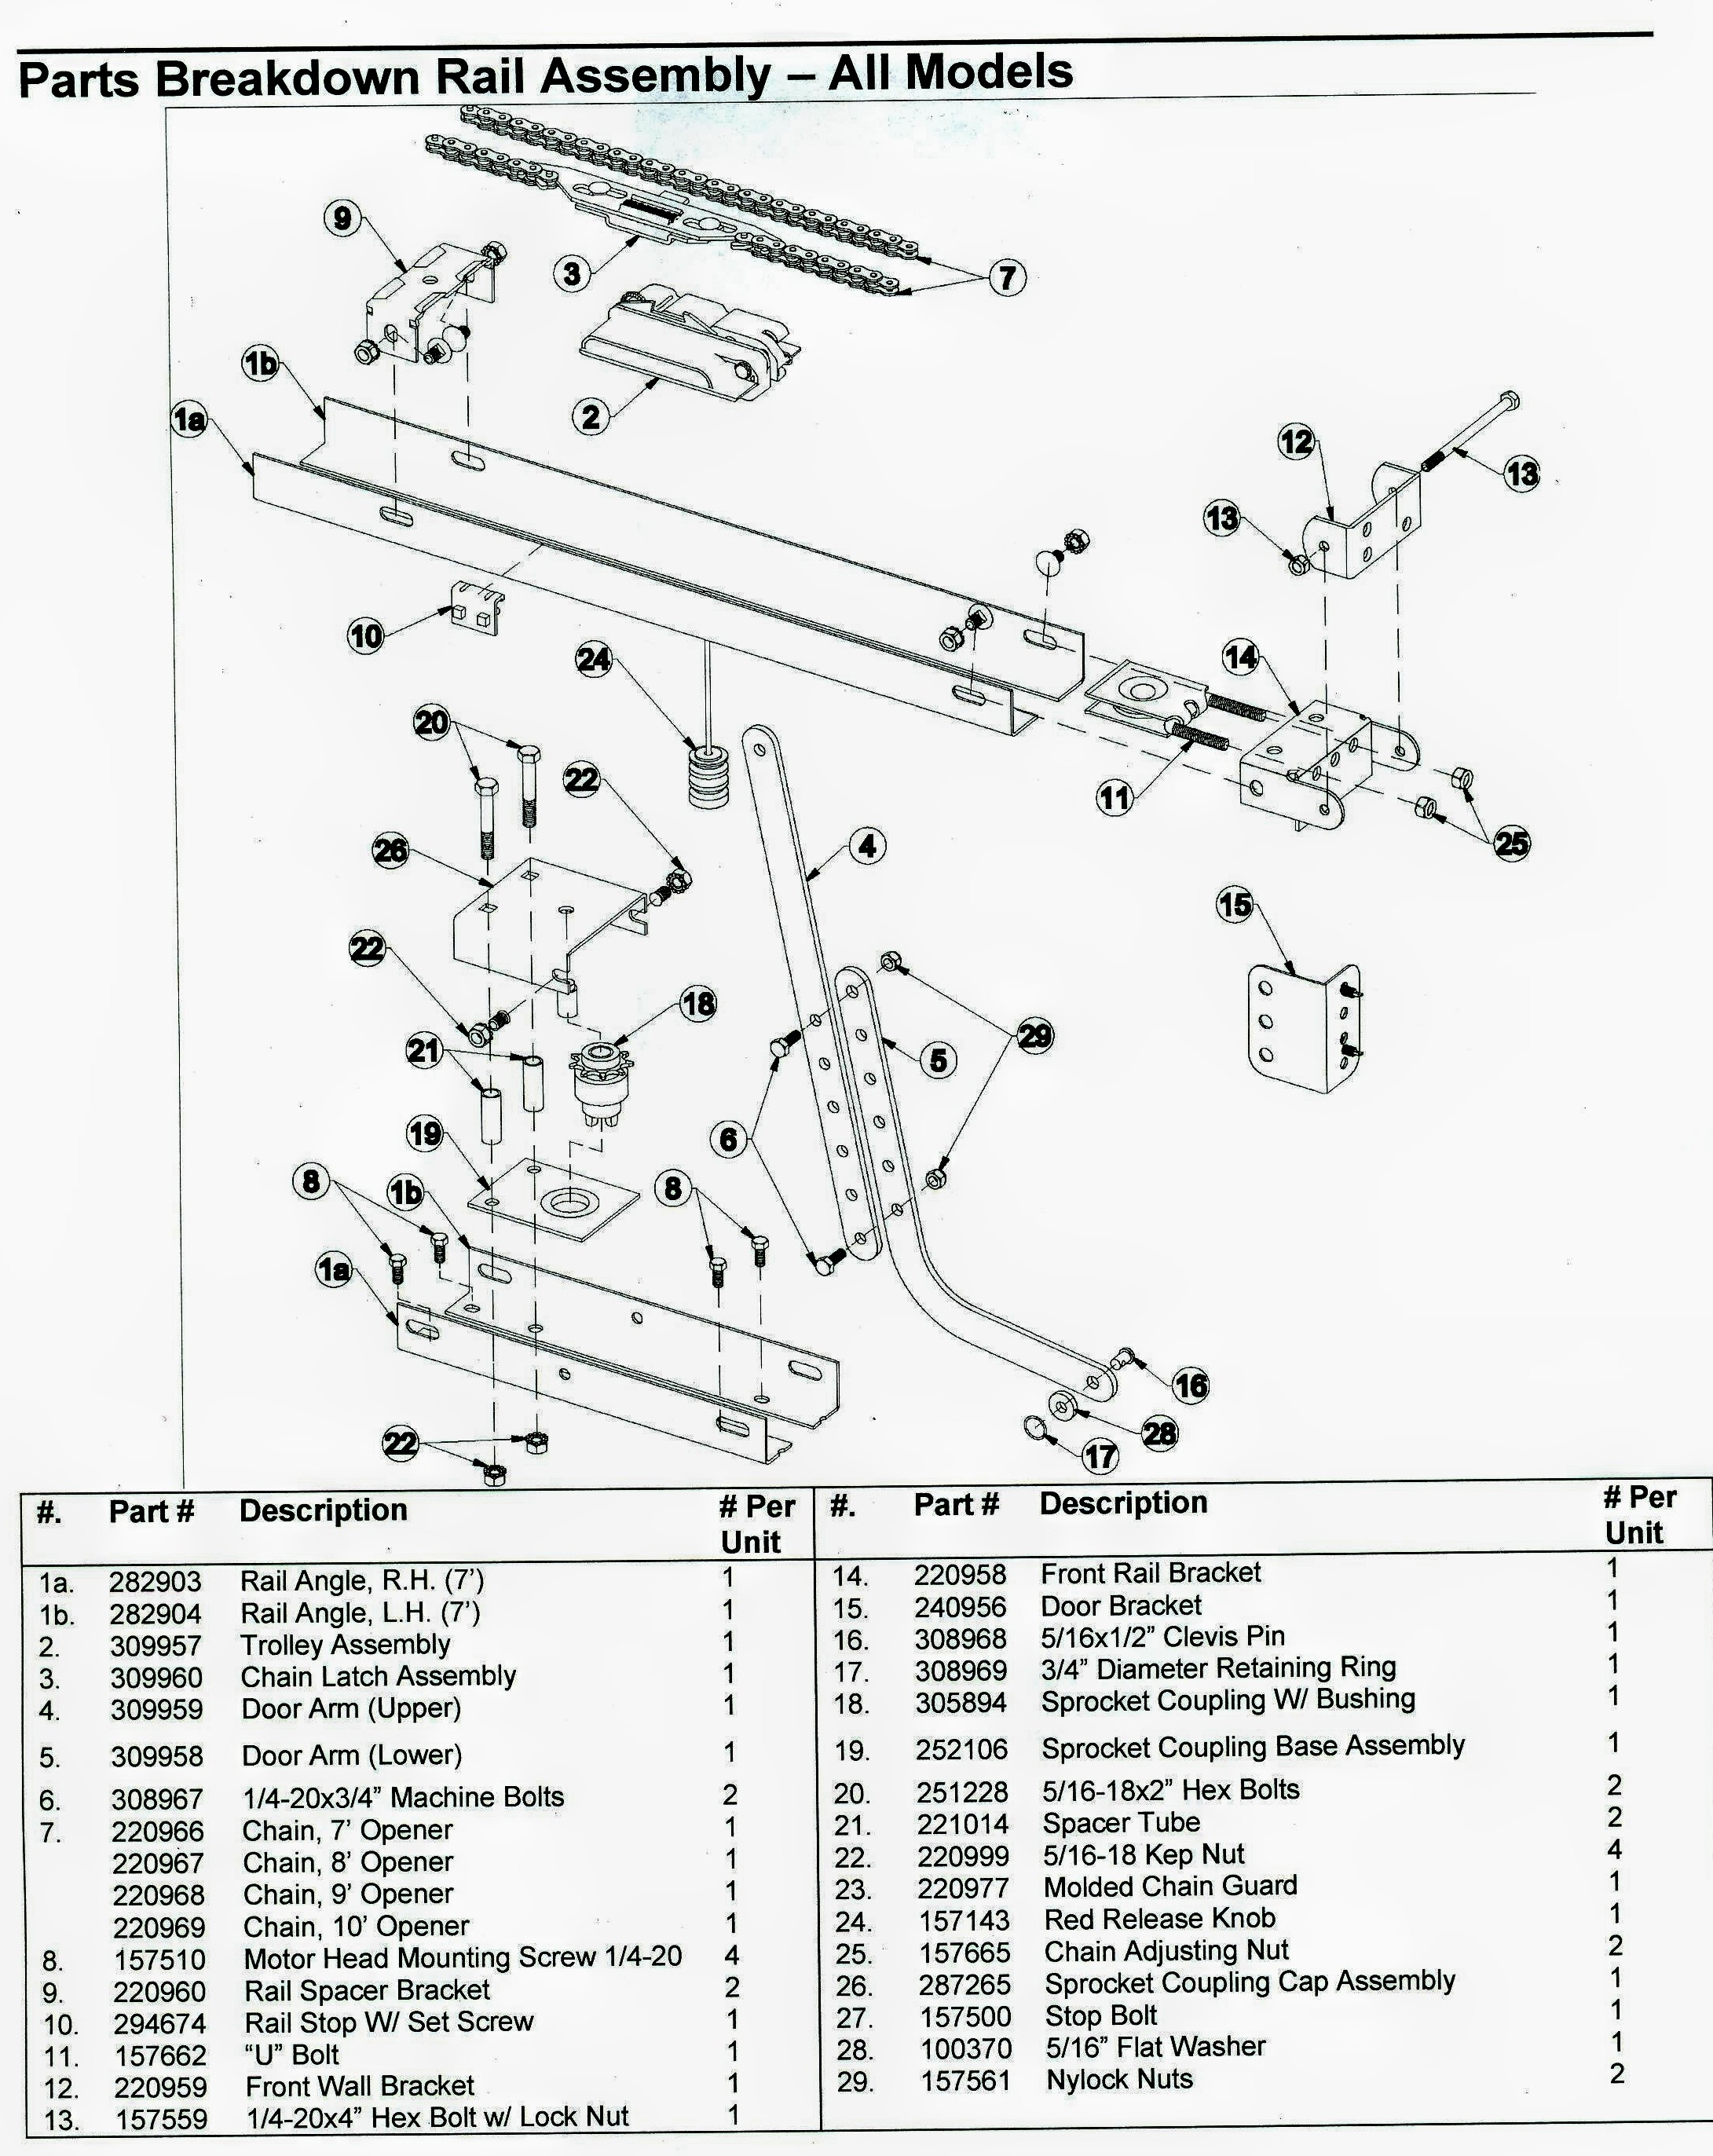 wiring diagram for liftmaster garage door opener wiring diagram throughout liftmaster garage door opener parts diagram cub cadet 122 wiring diagram cub wiring diagrams cub lowboy 154 wiring diagram at reclaimingppi.co